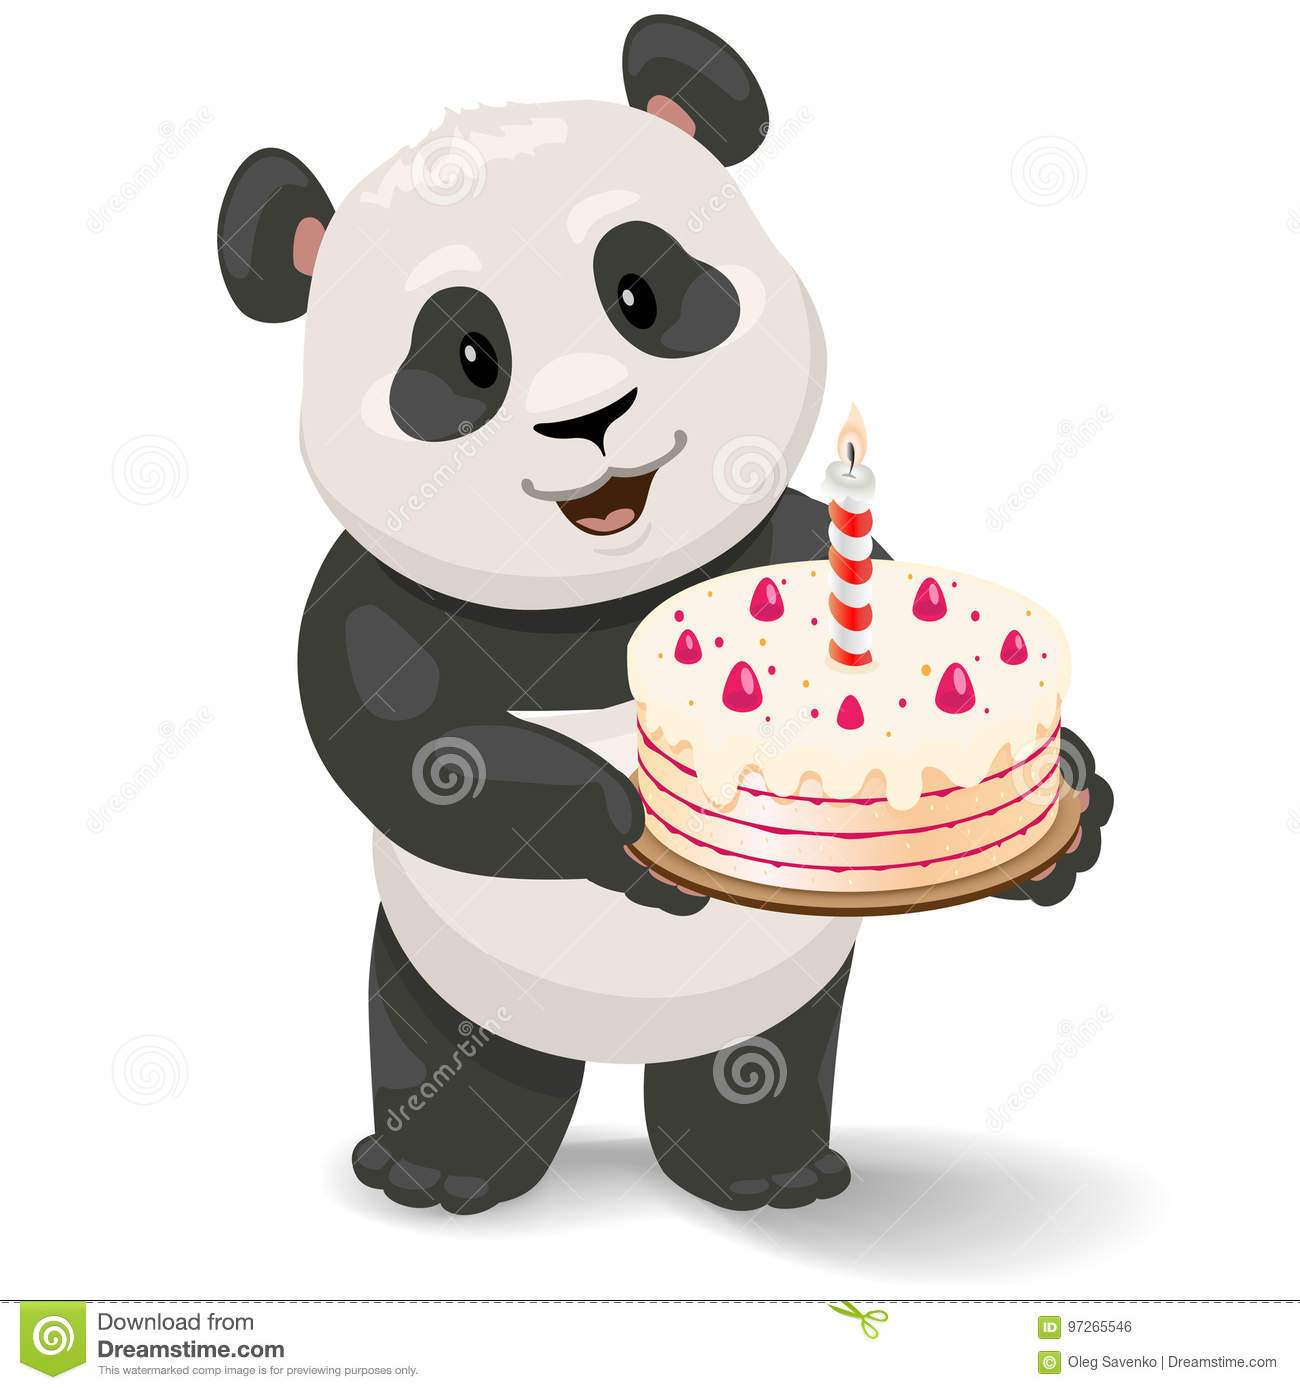 Panda Holding Birthday Cake Vector Clip Art Illustration With Simple Gradients